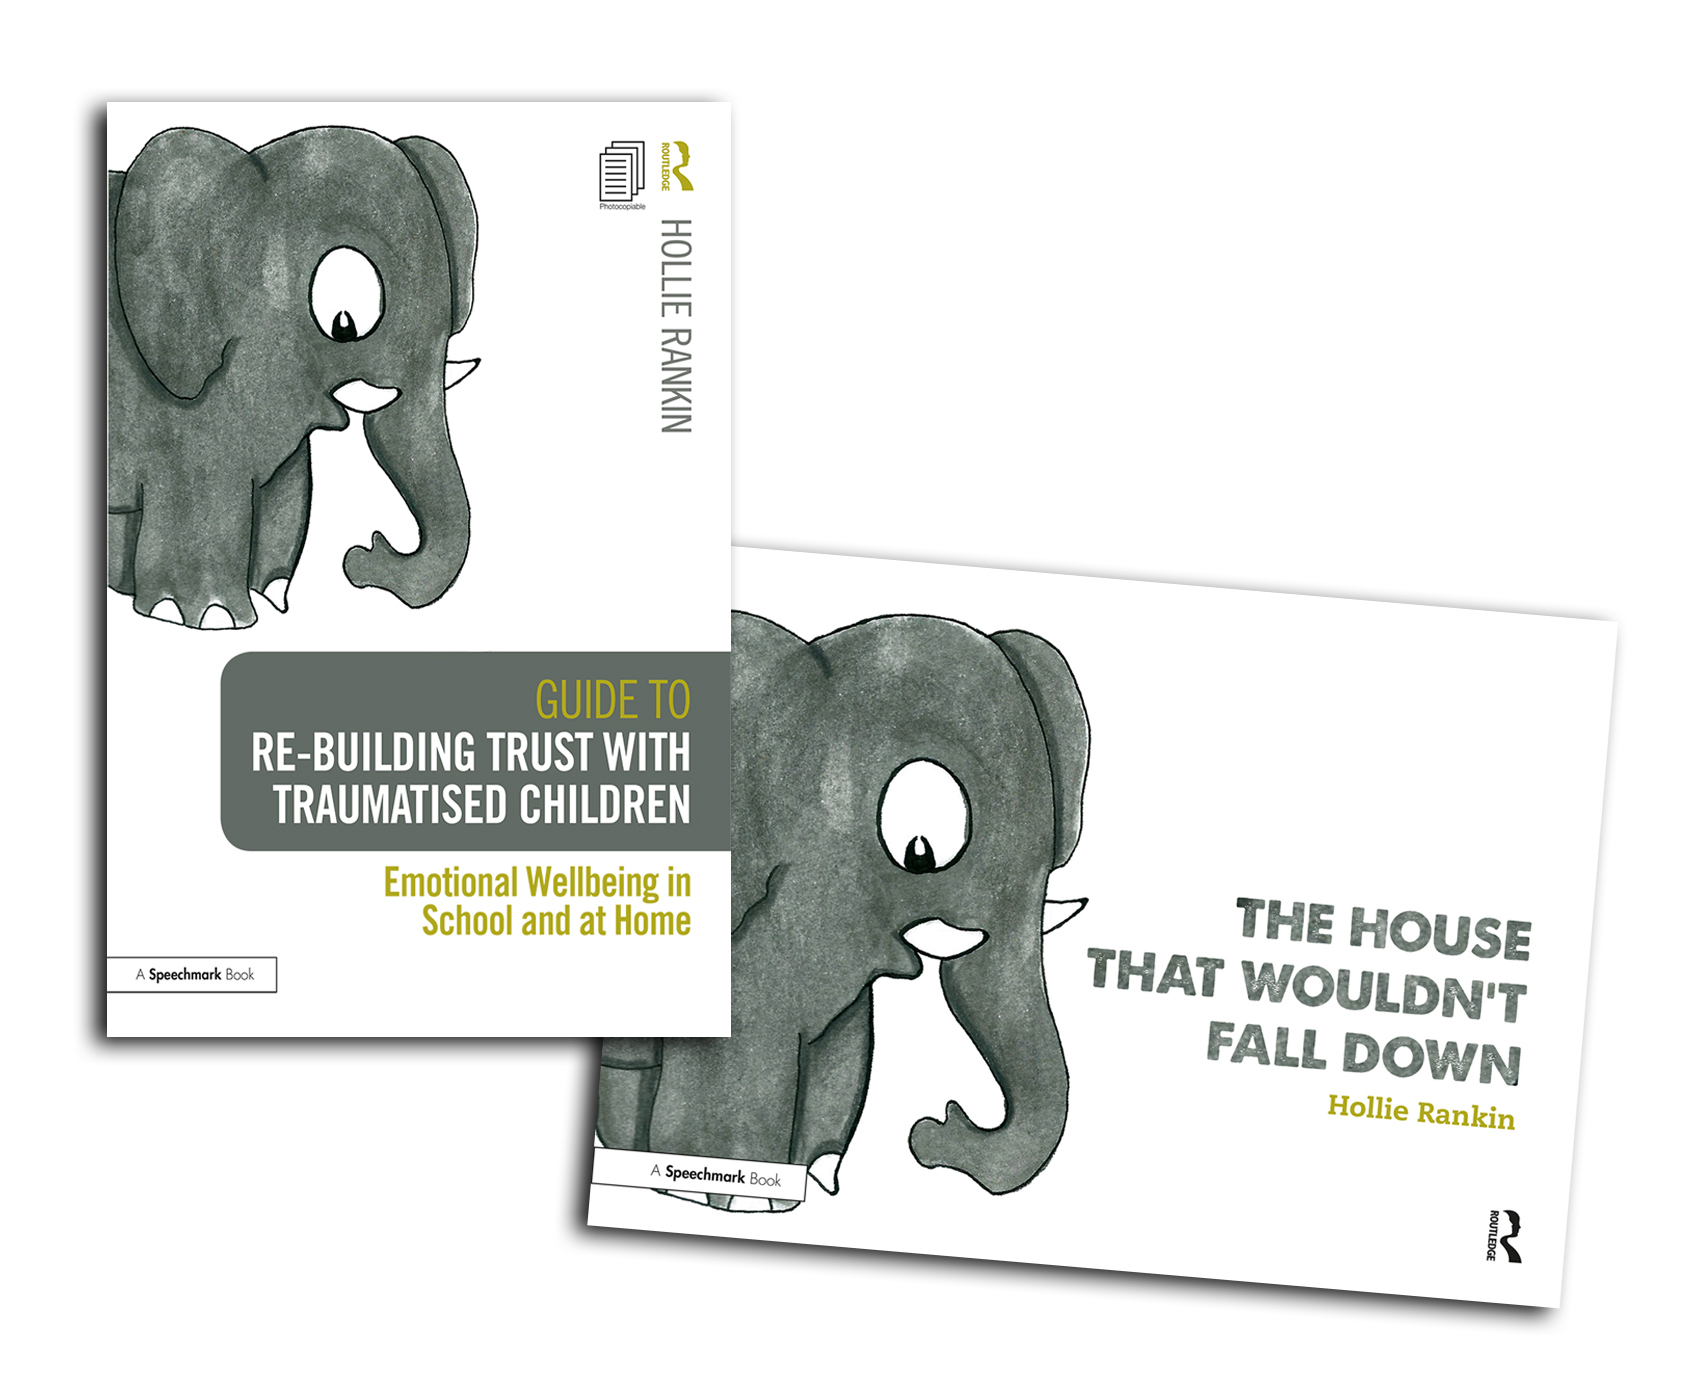 Re-building Trust with Traumatised Children & The House that Wouldn't Fall Down book cover